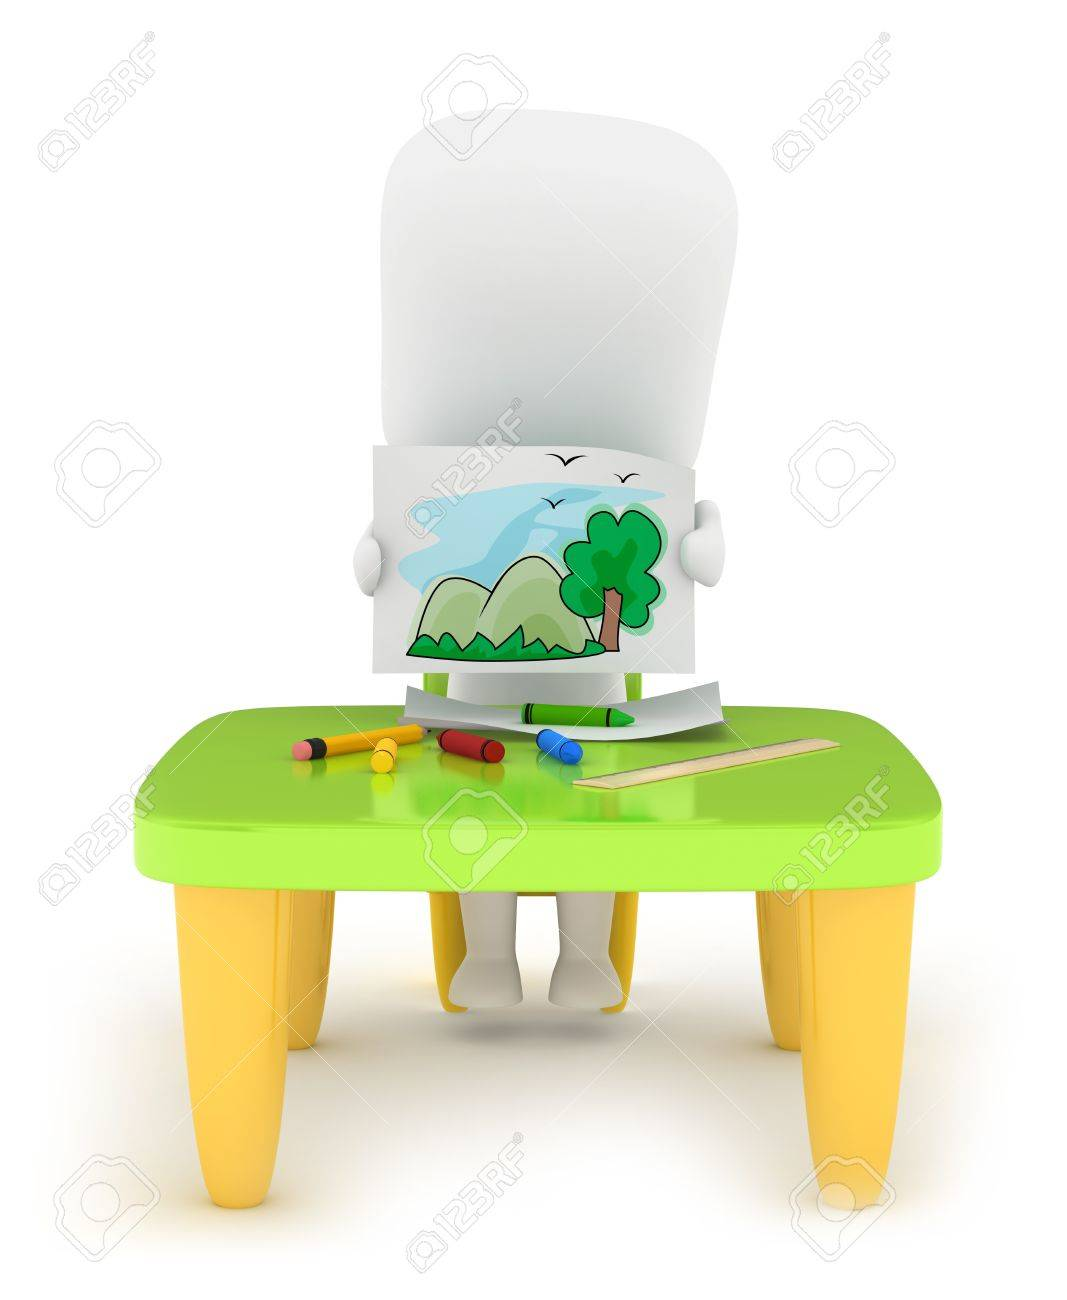 3D Illustration of a Kid Showing His Drawing Stock Photo - 10726465